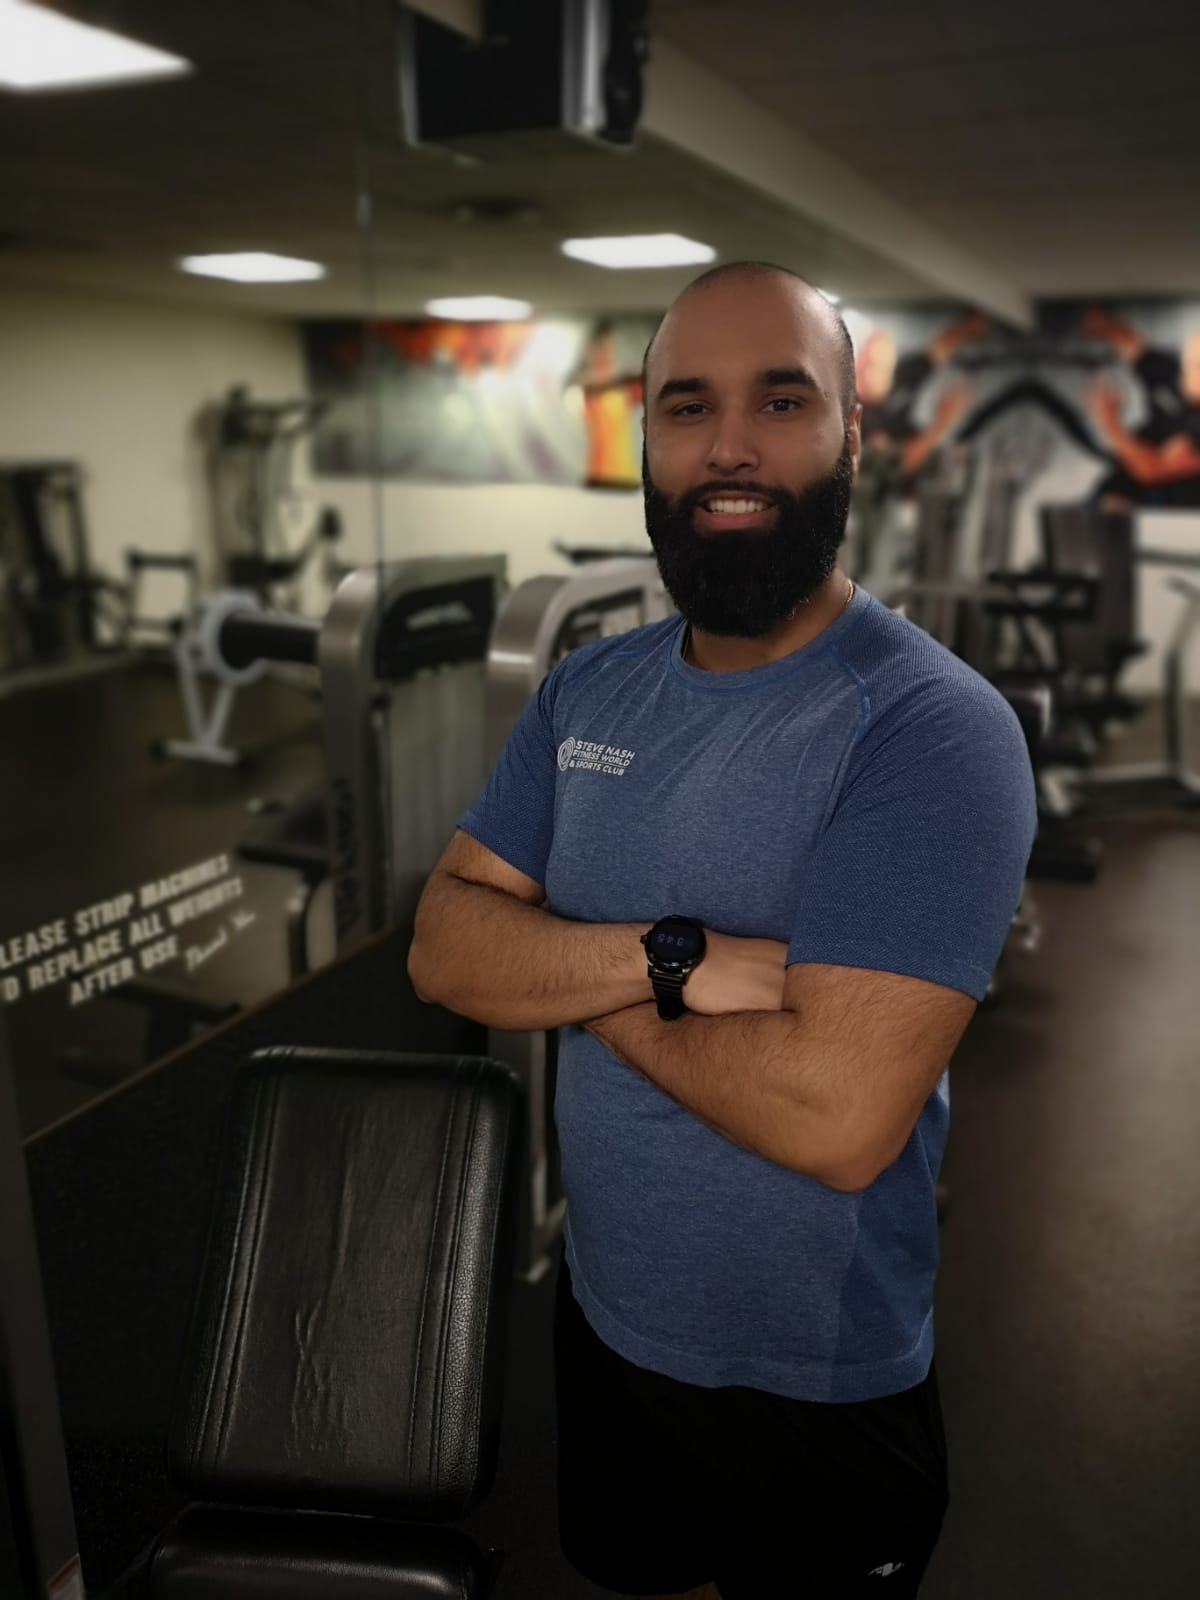 From Hiring a Personal Trainer to Becoming a Personal Trainer